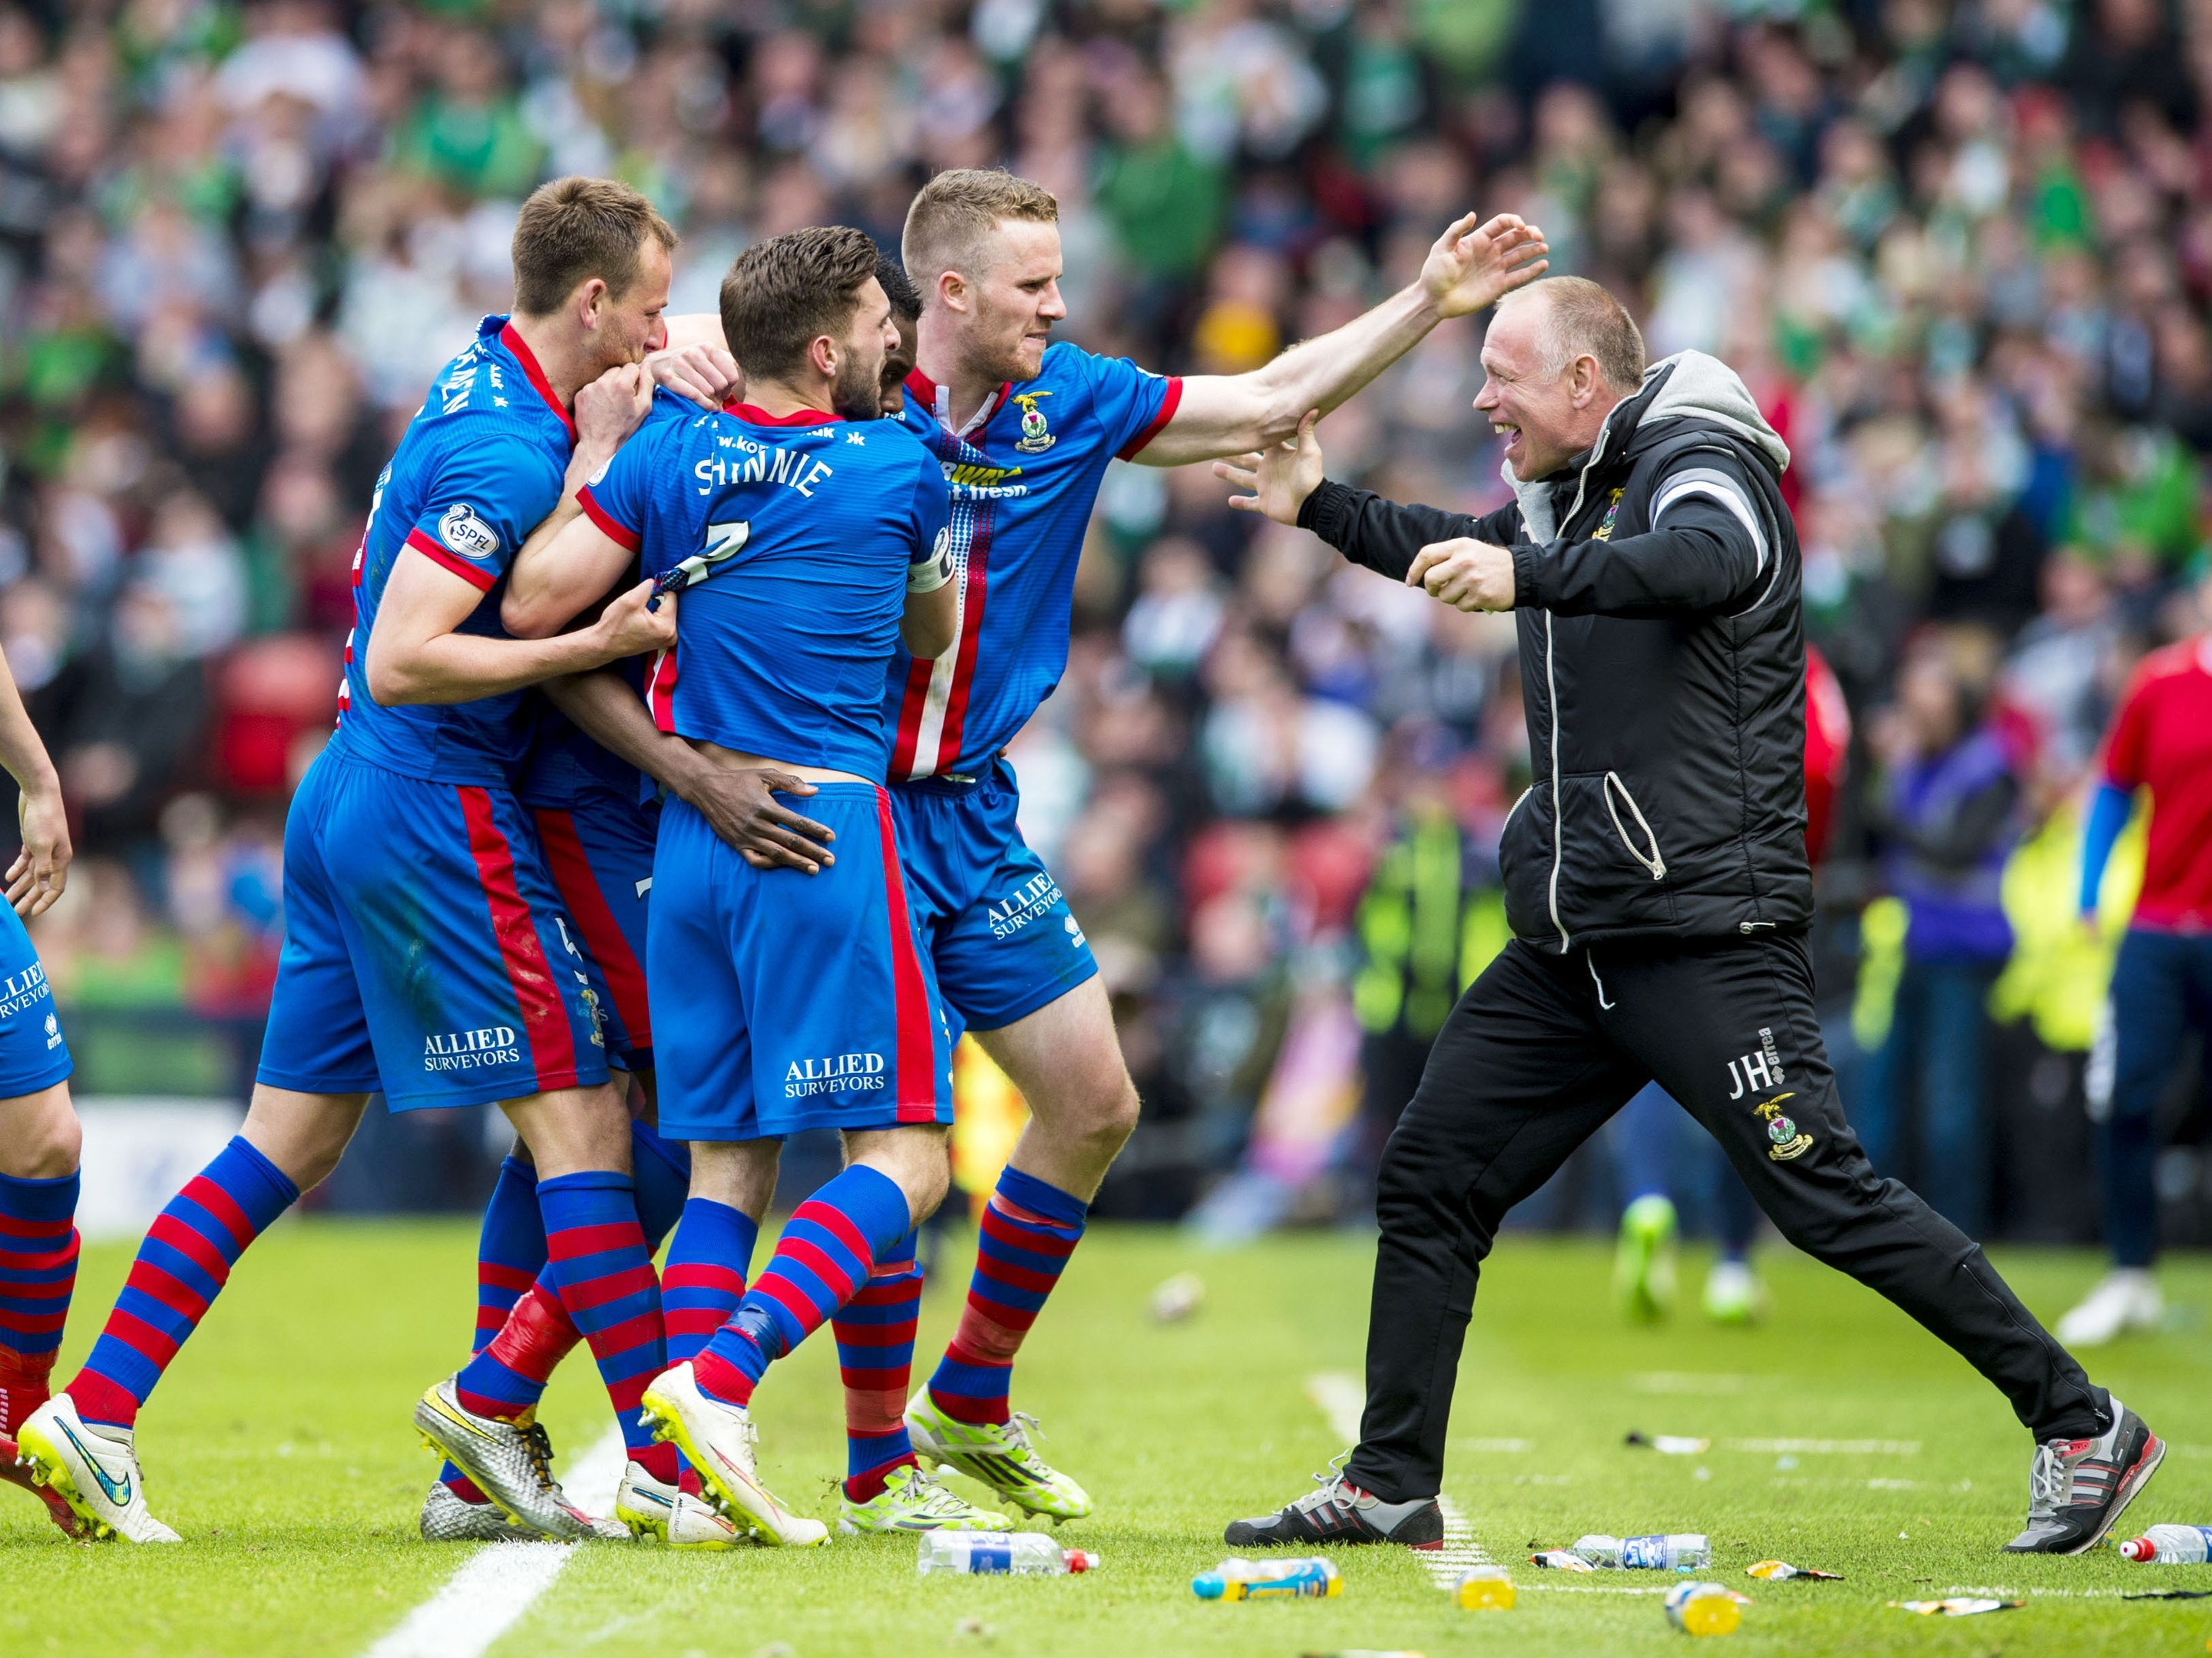 Caley Thistle knocked Celtic out in the Scottish Cup semi final